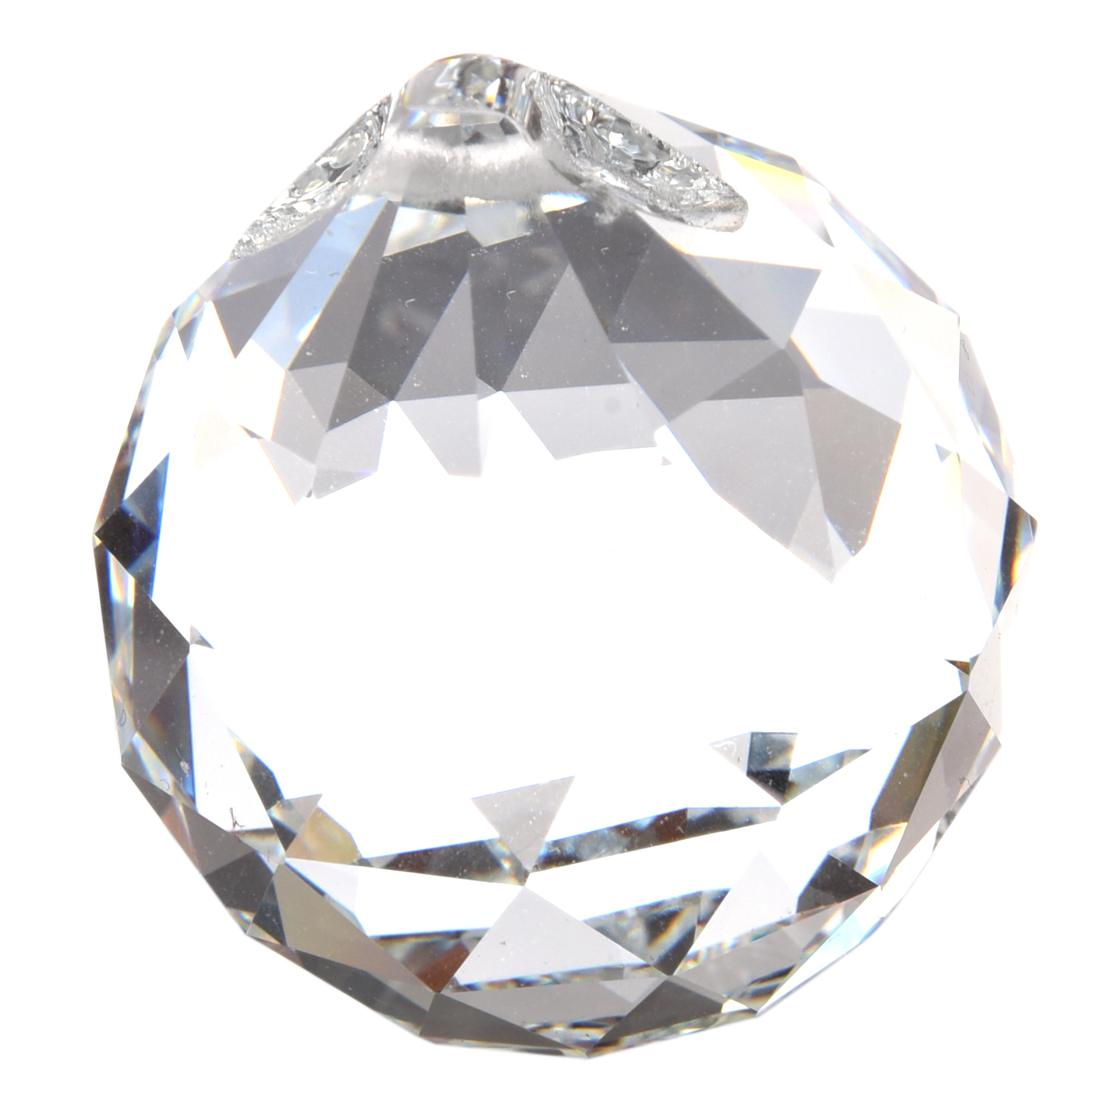 Sale 40 Mm Feng Shui Faceted Decorating Crystal Ball (Clear)